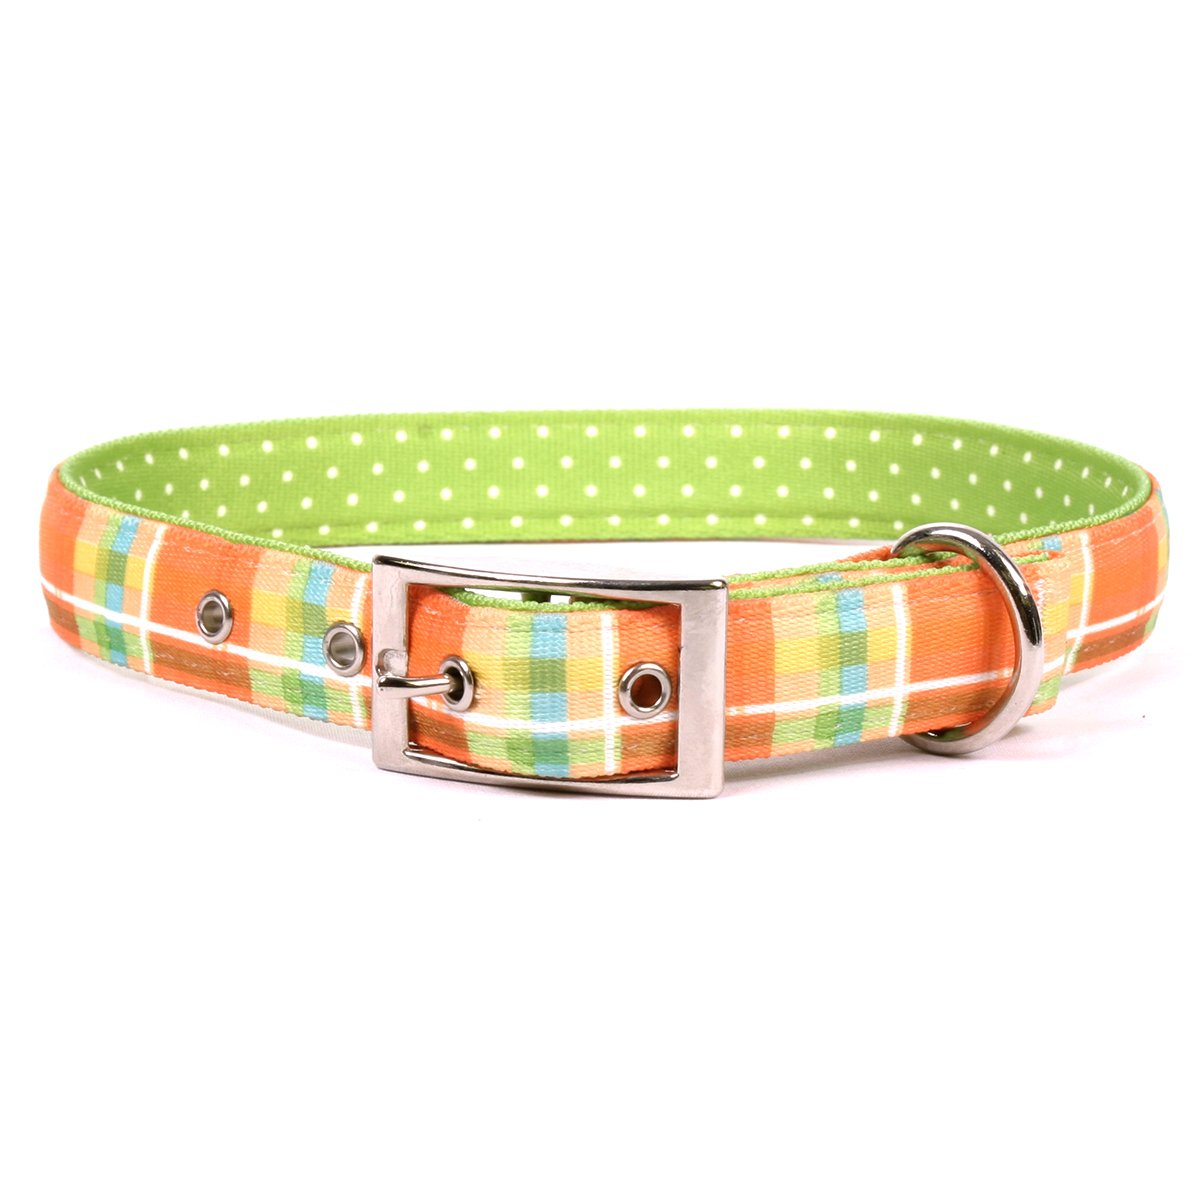 Yellow Dog Design Madras Orange Uptown Dog Collar, Small-3/4 Wide and fits Neck Sizes 11 to 14.5''